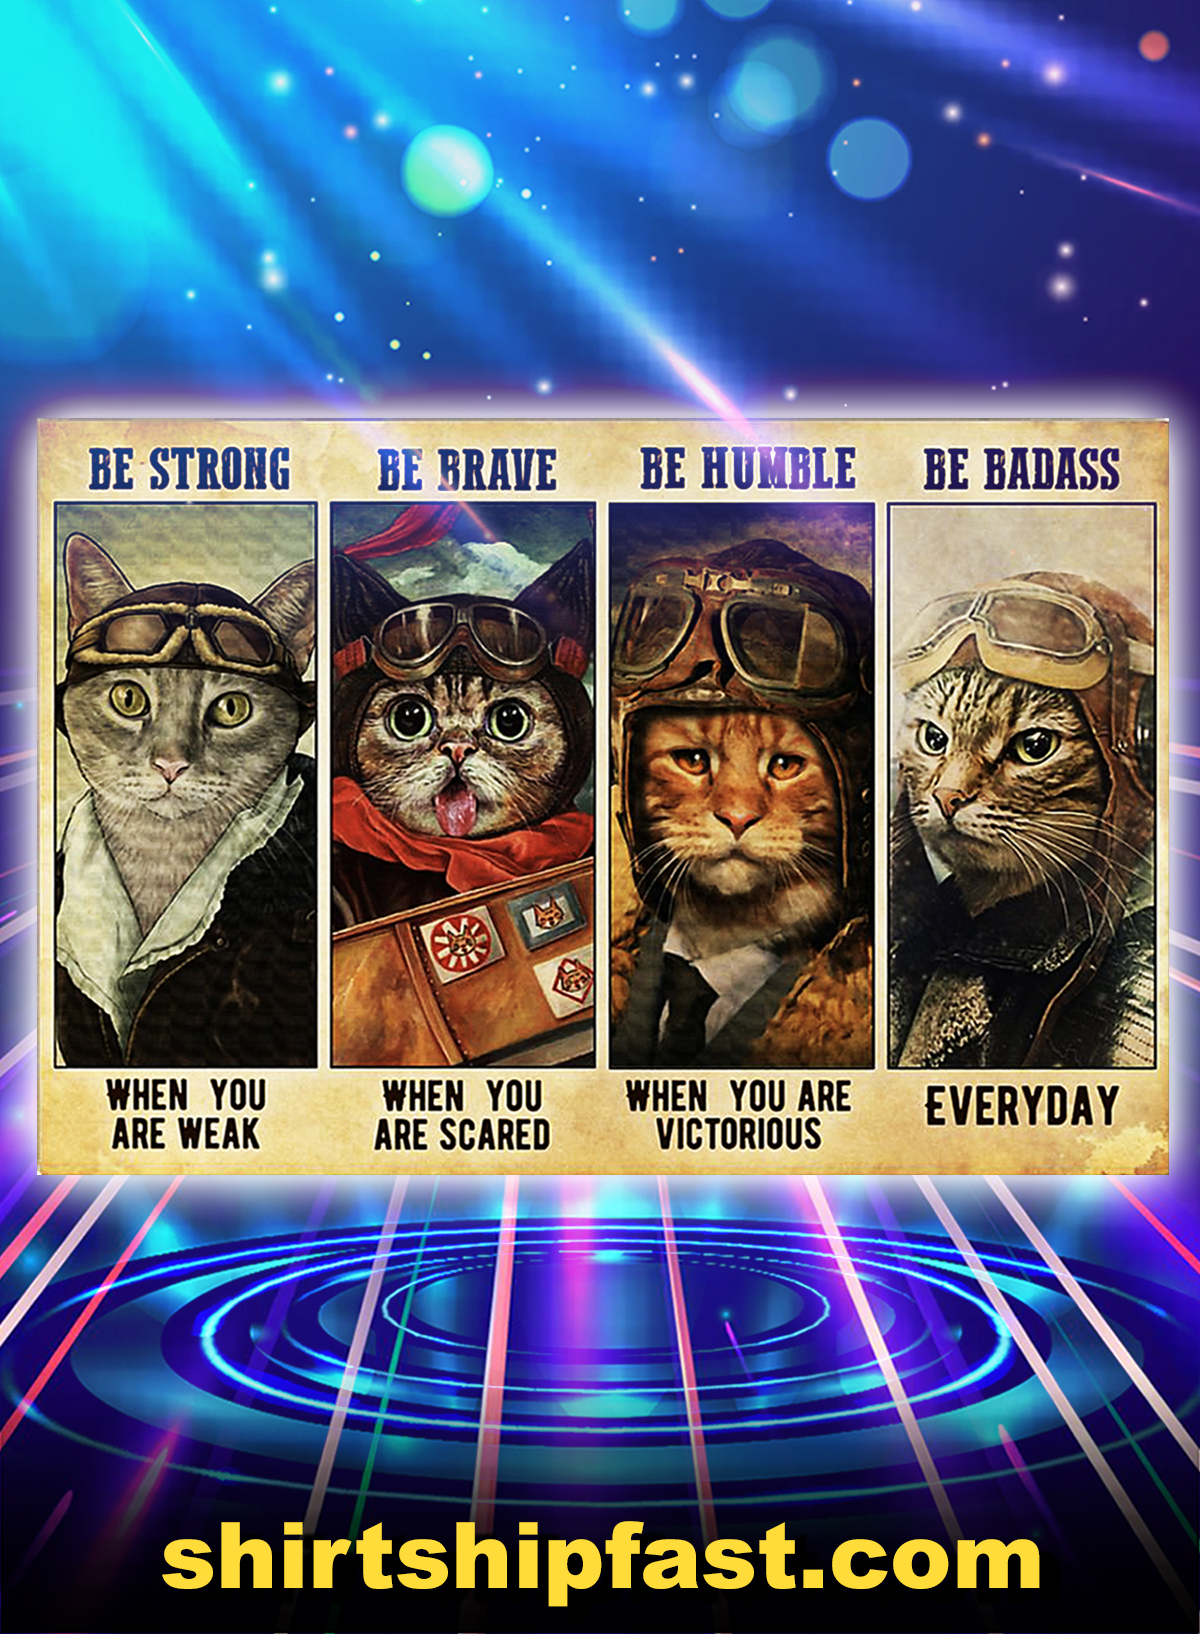 Cat pilot be strong be brave be humble be badass poster - A1